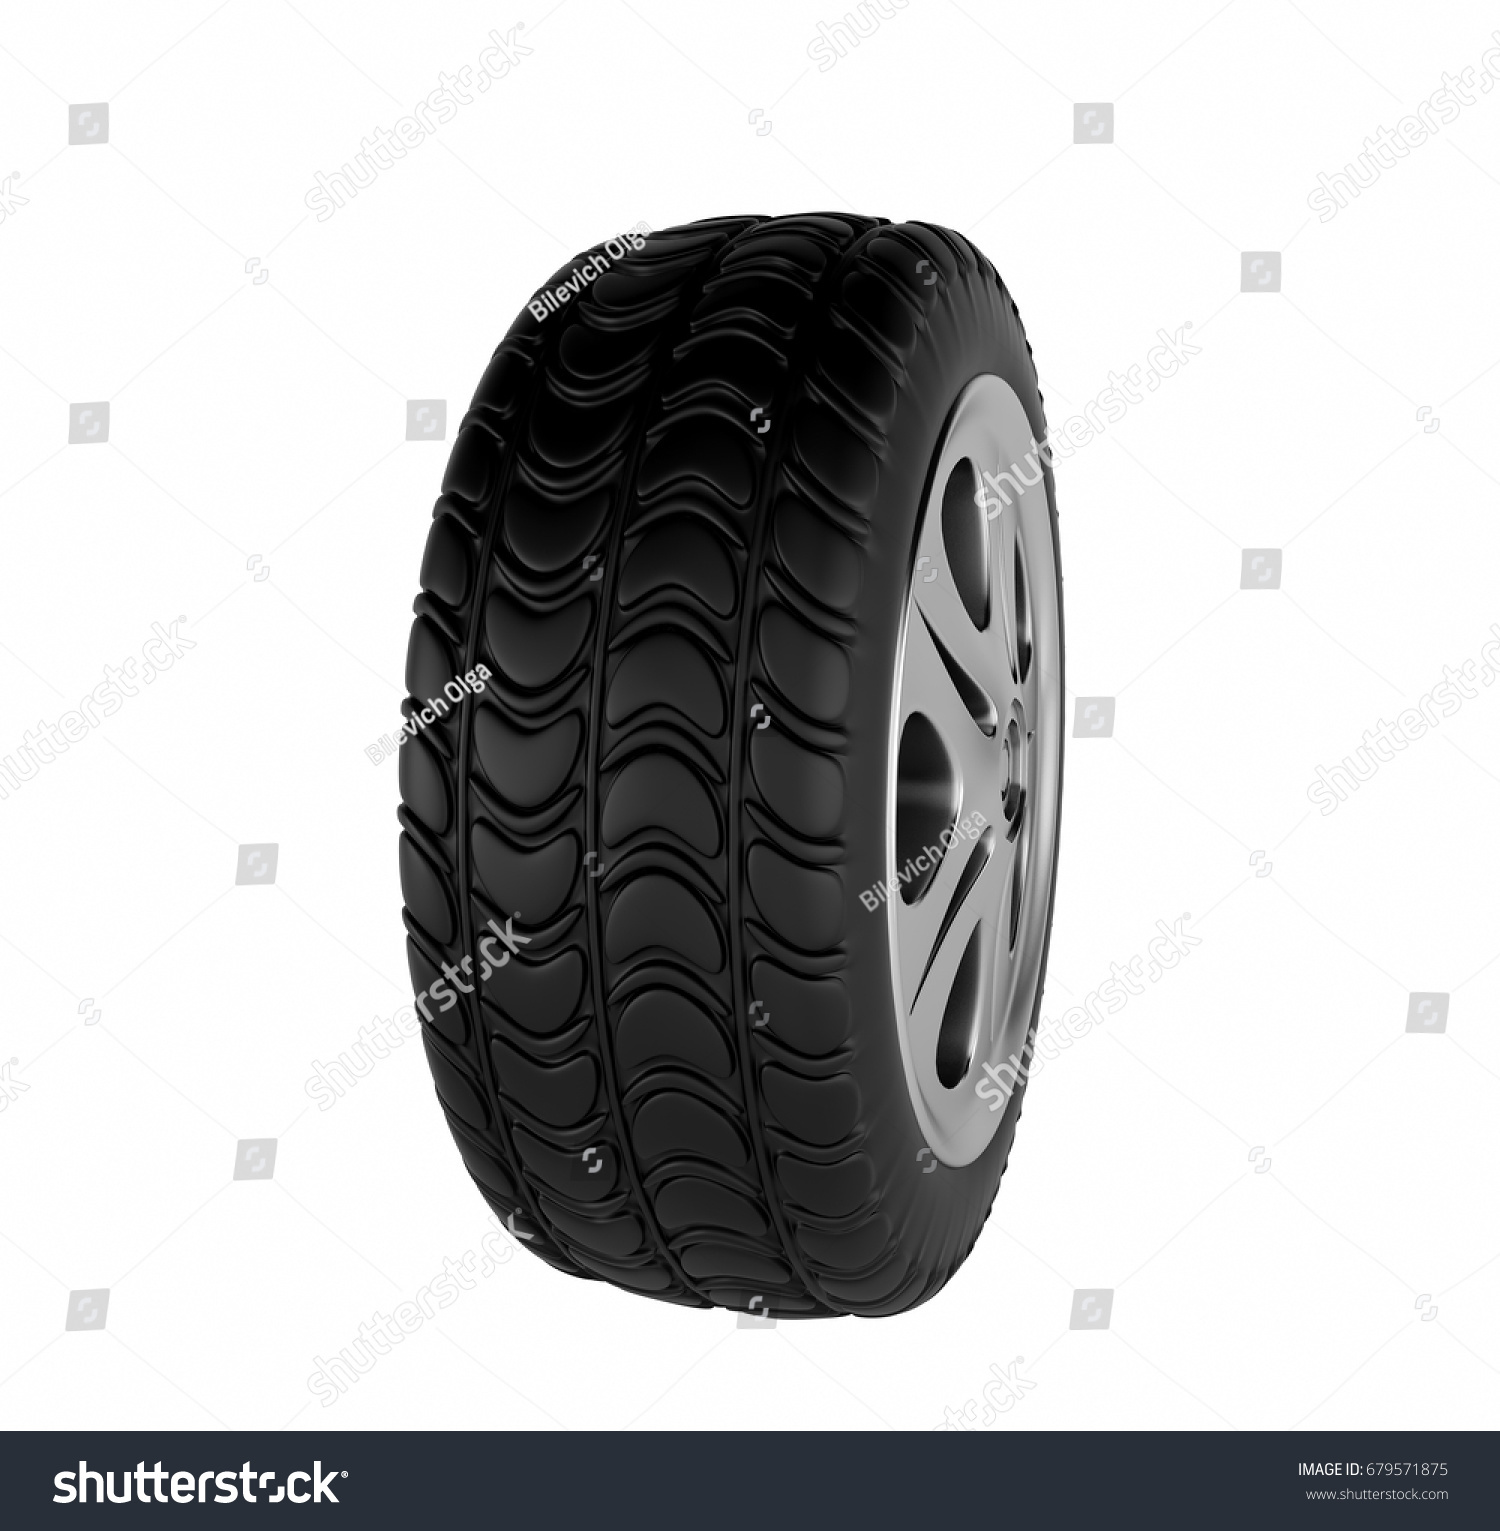 car wheel isolated on white background 3d rendering